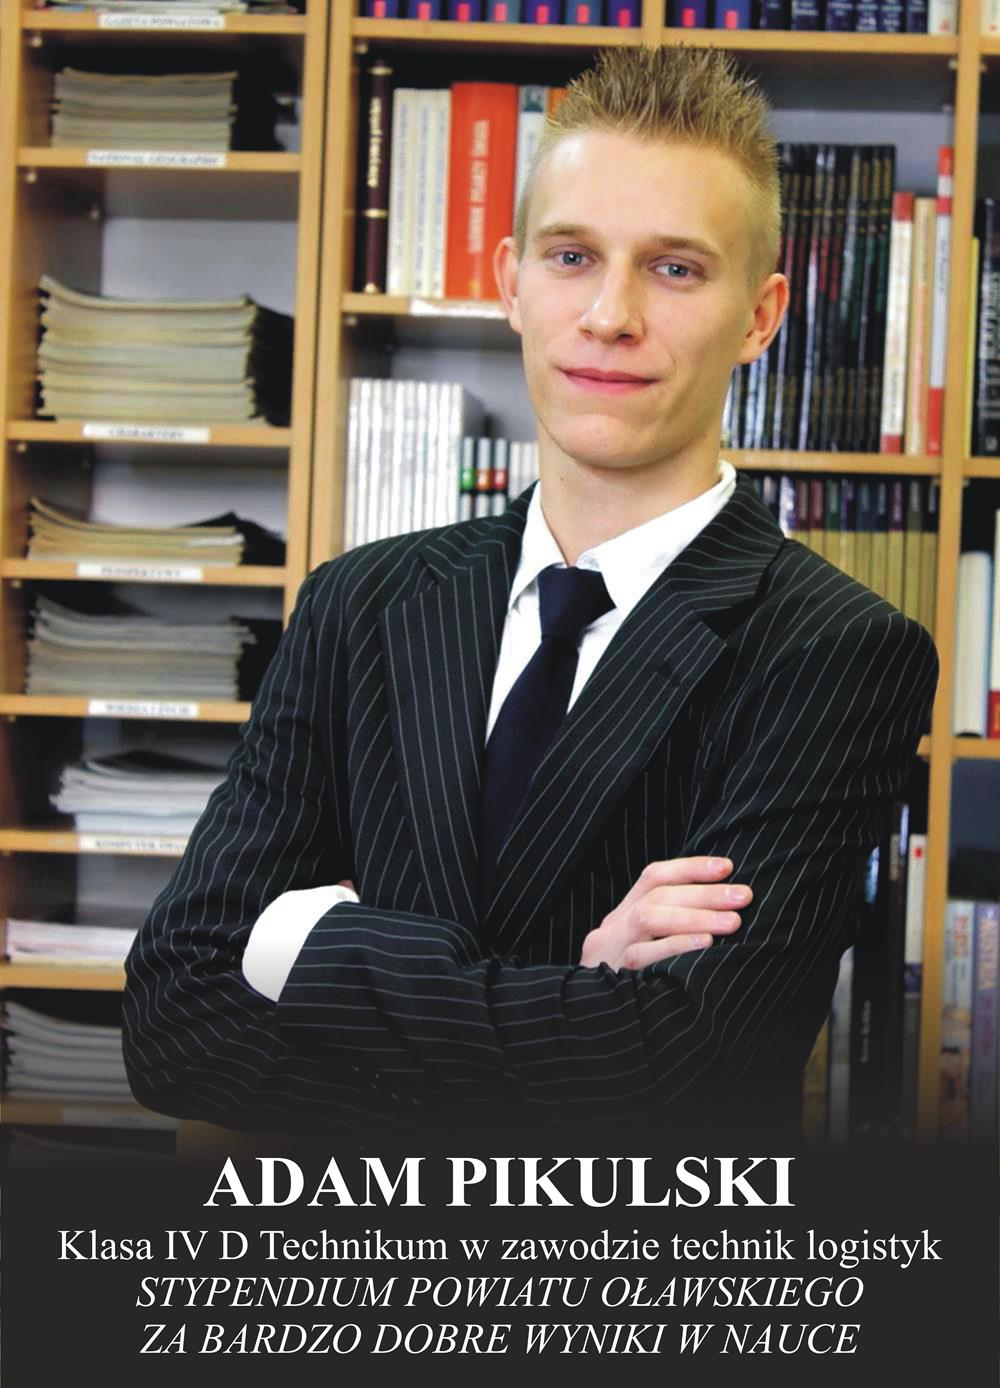 AdamPikulski Copy